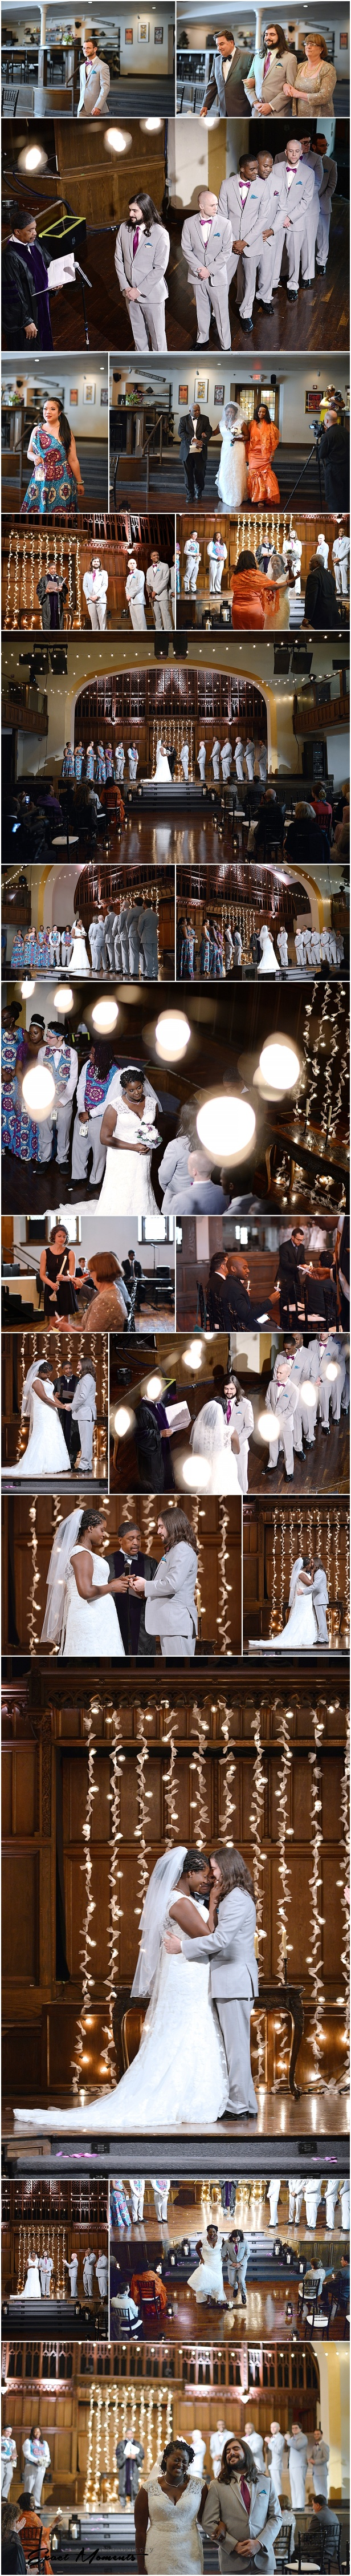 The Bluestone wedding ceremony columbus Ohio